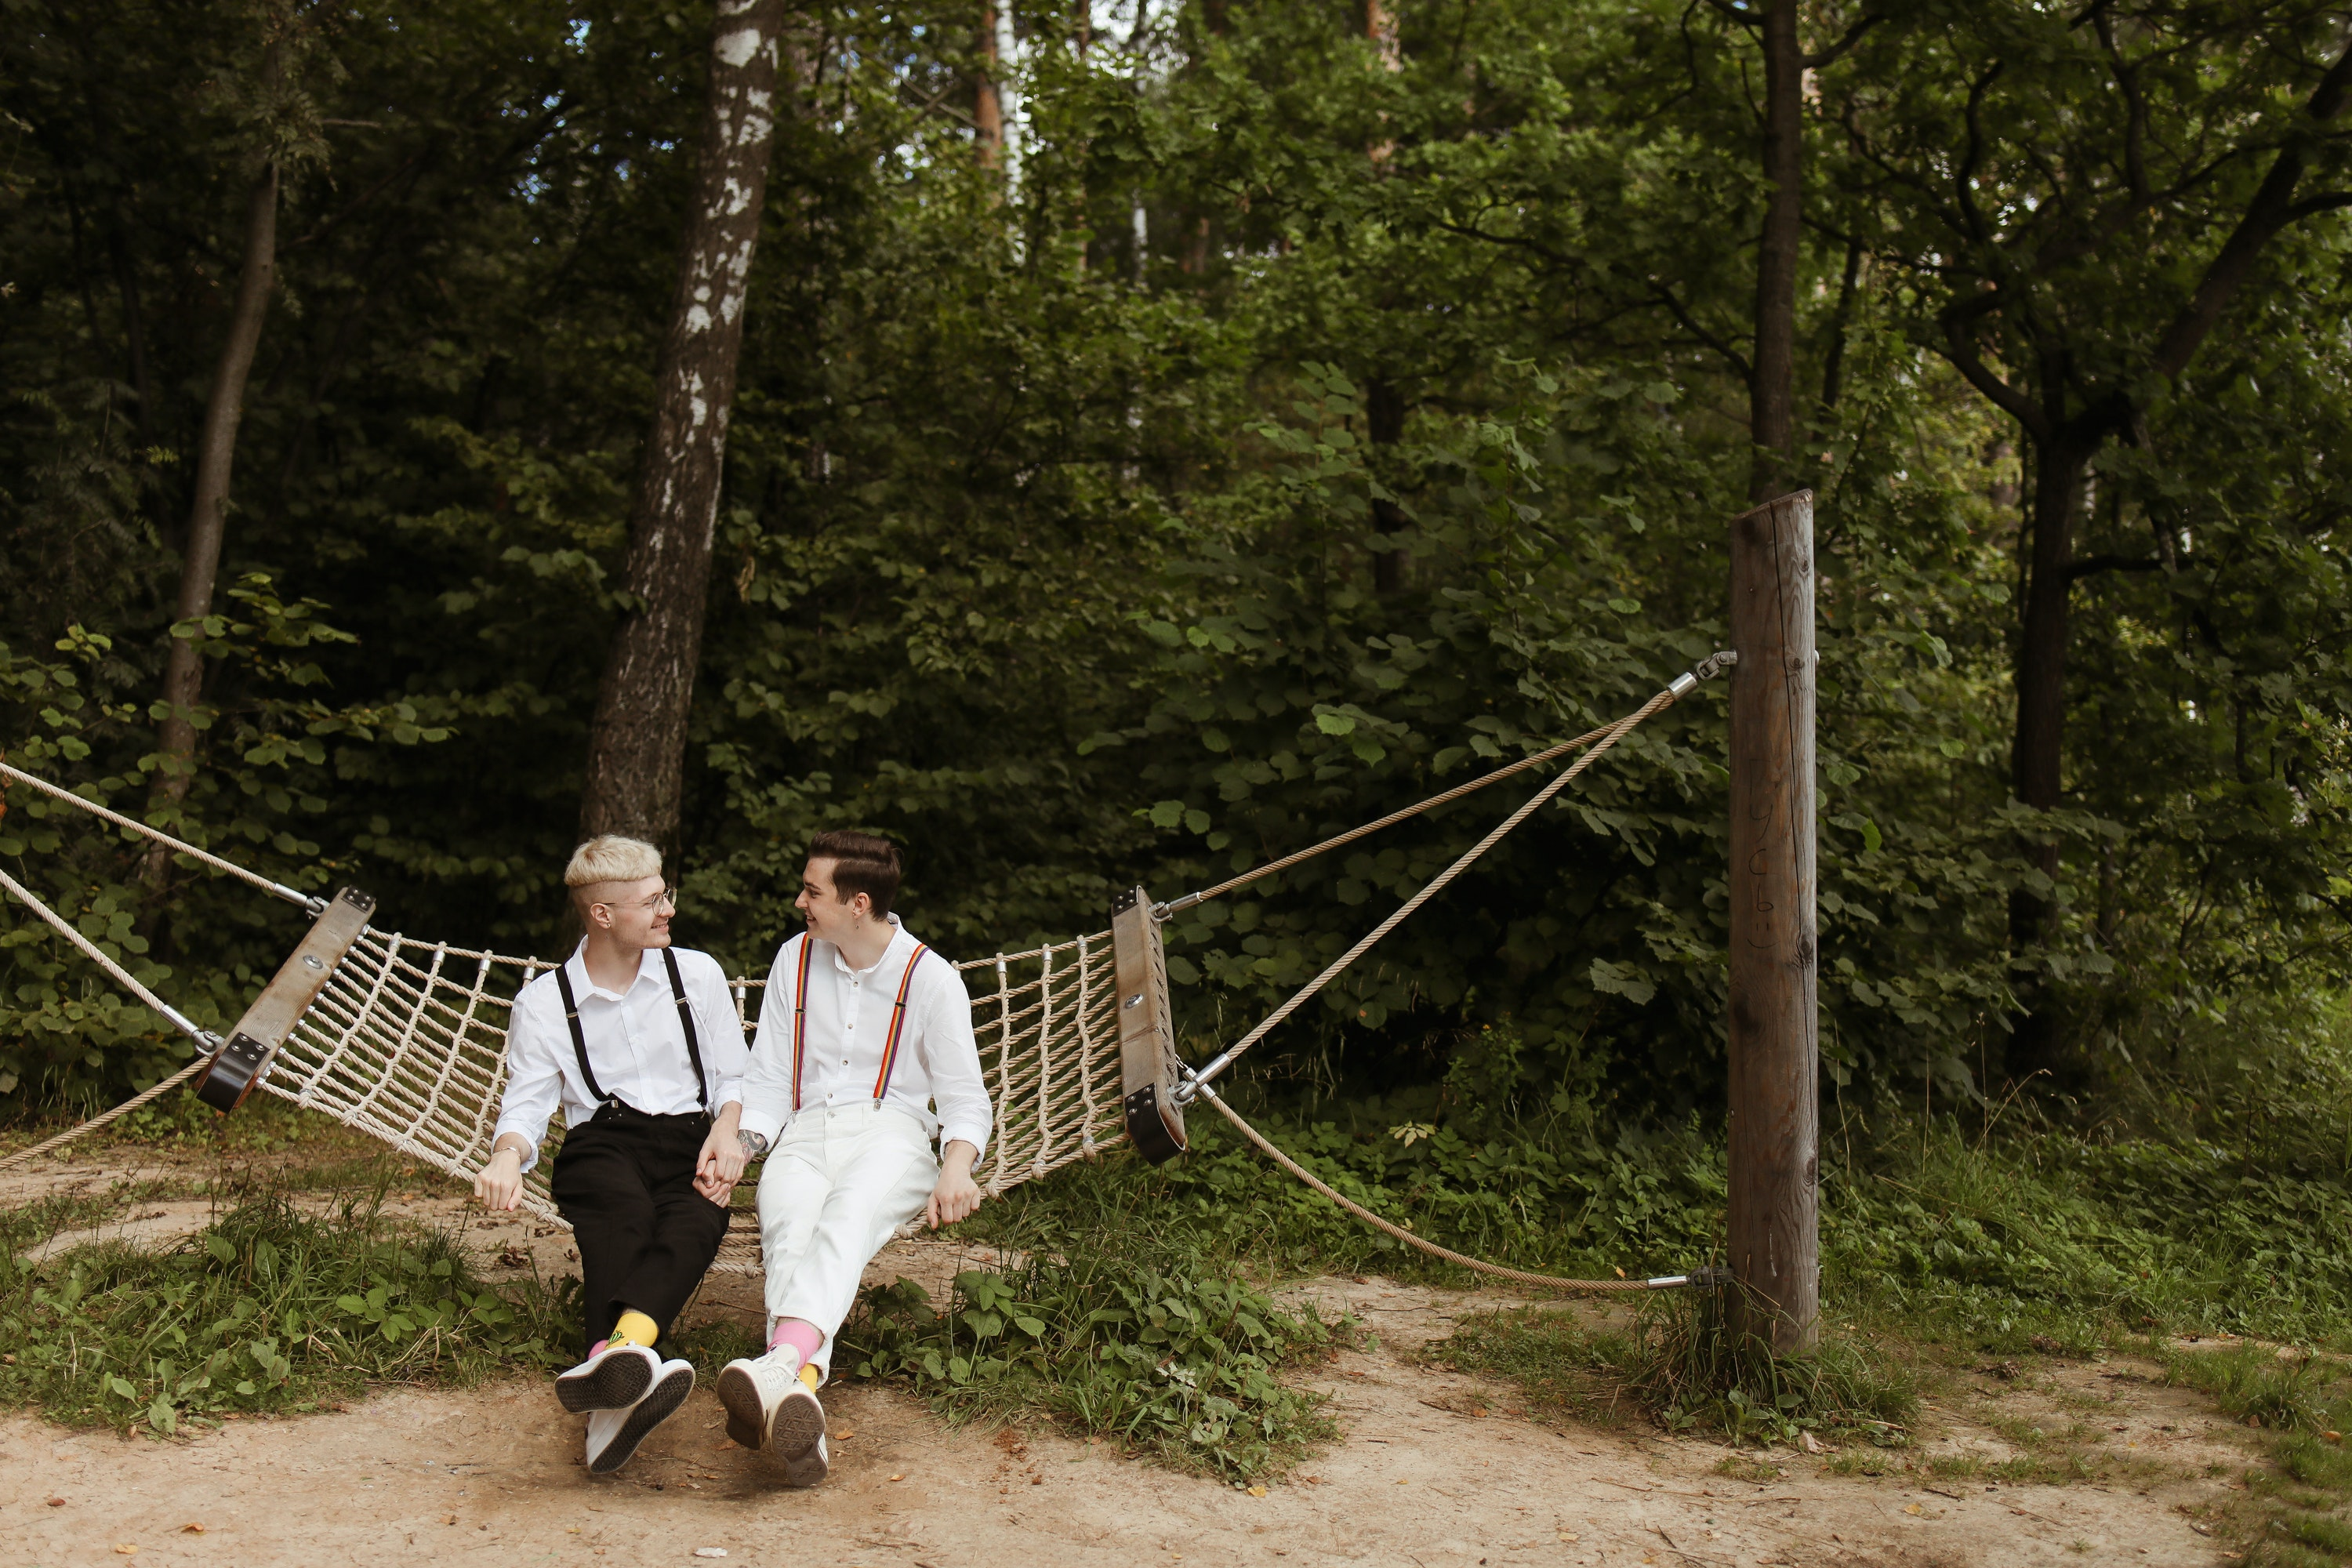 grooms smiling at each other holding hands on a hammock with a green wooded backdrop